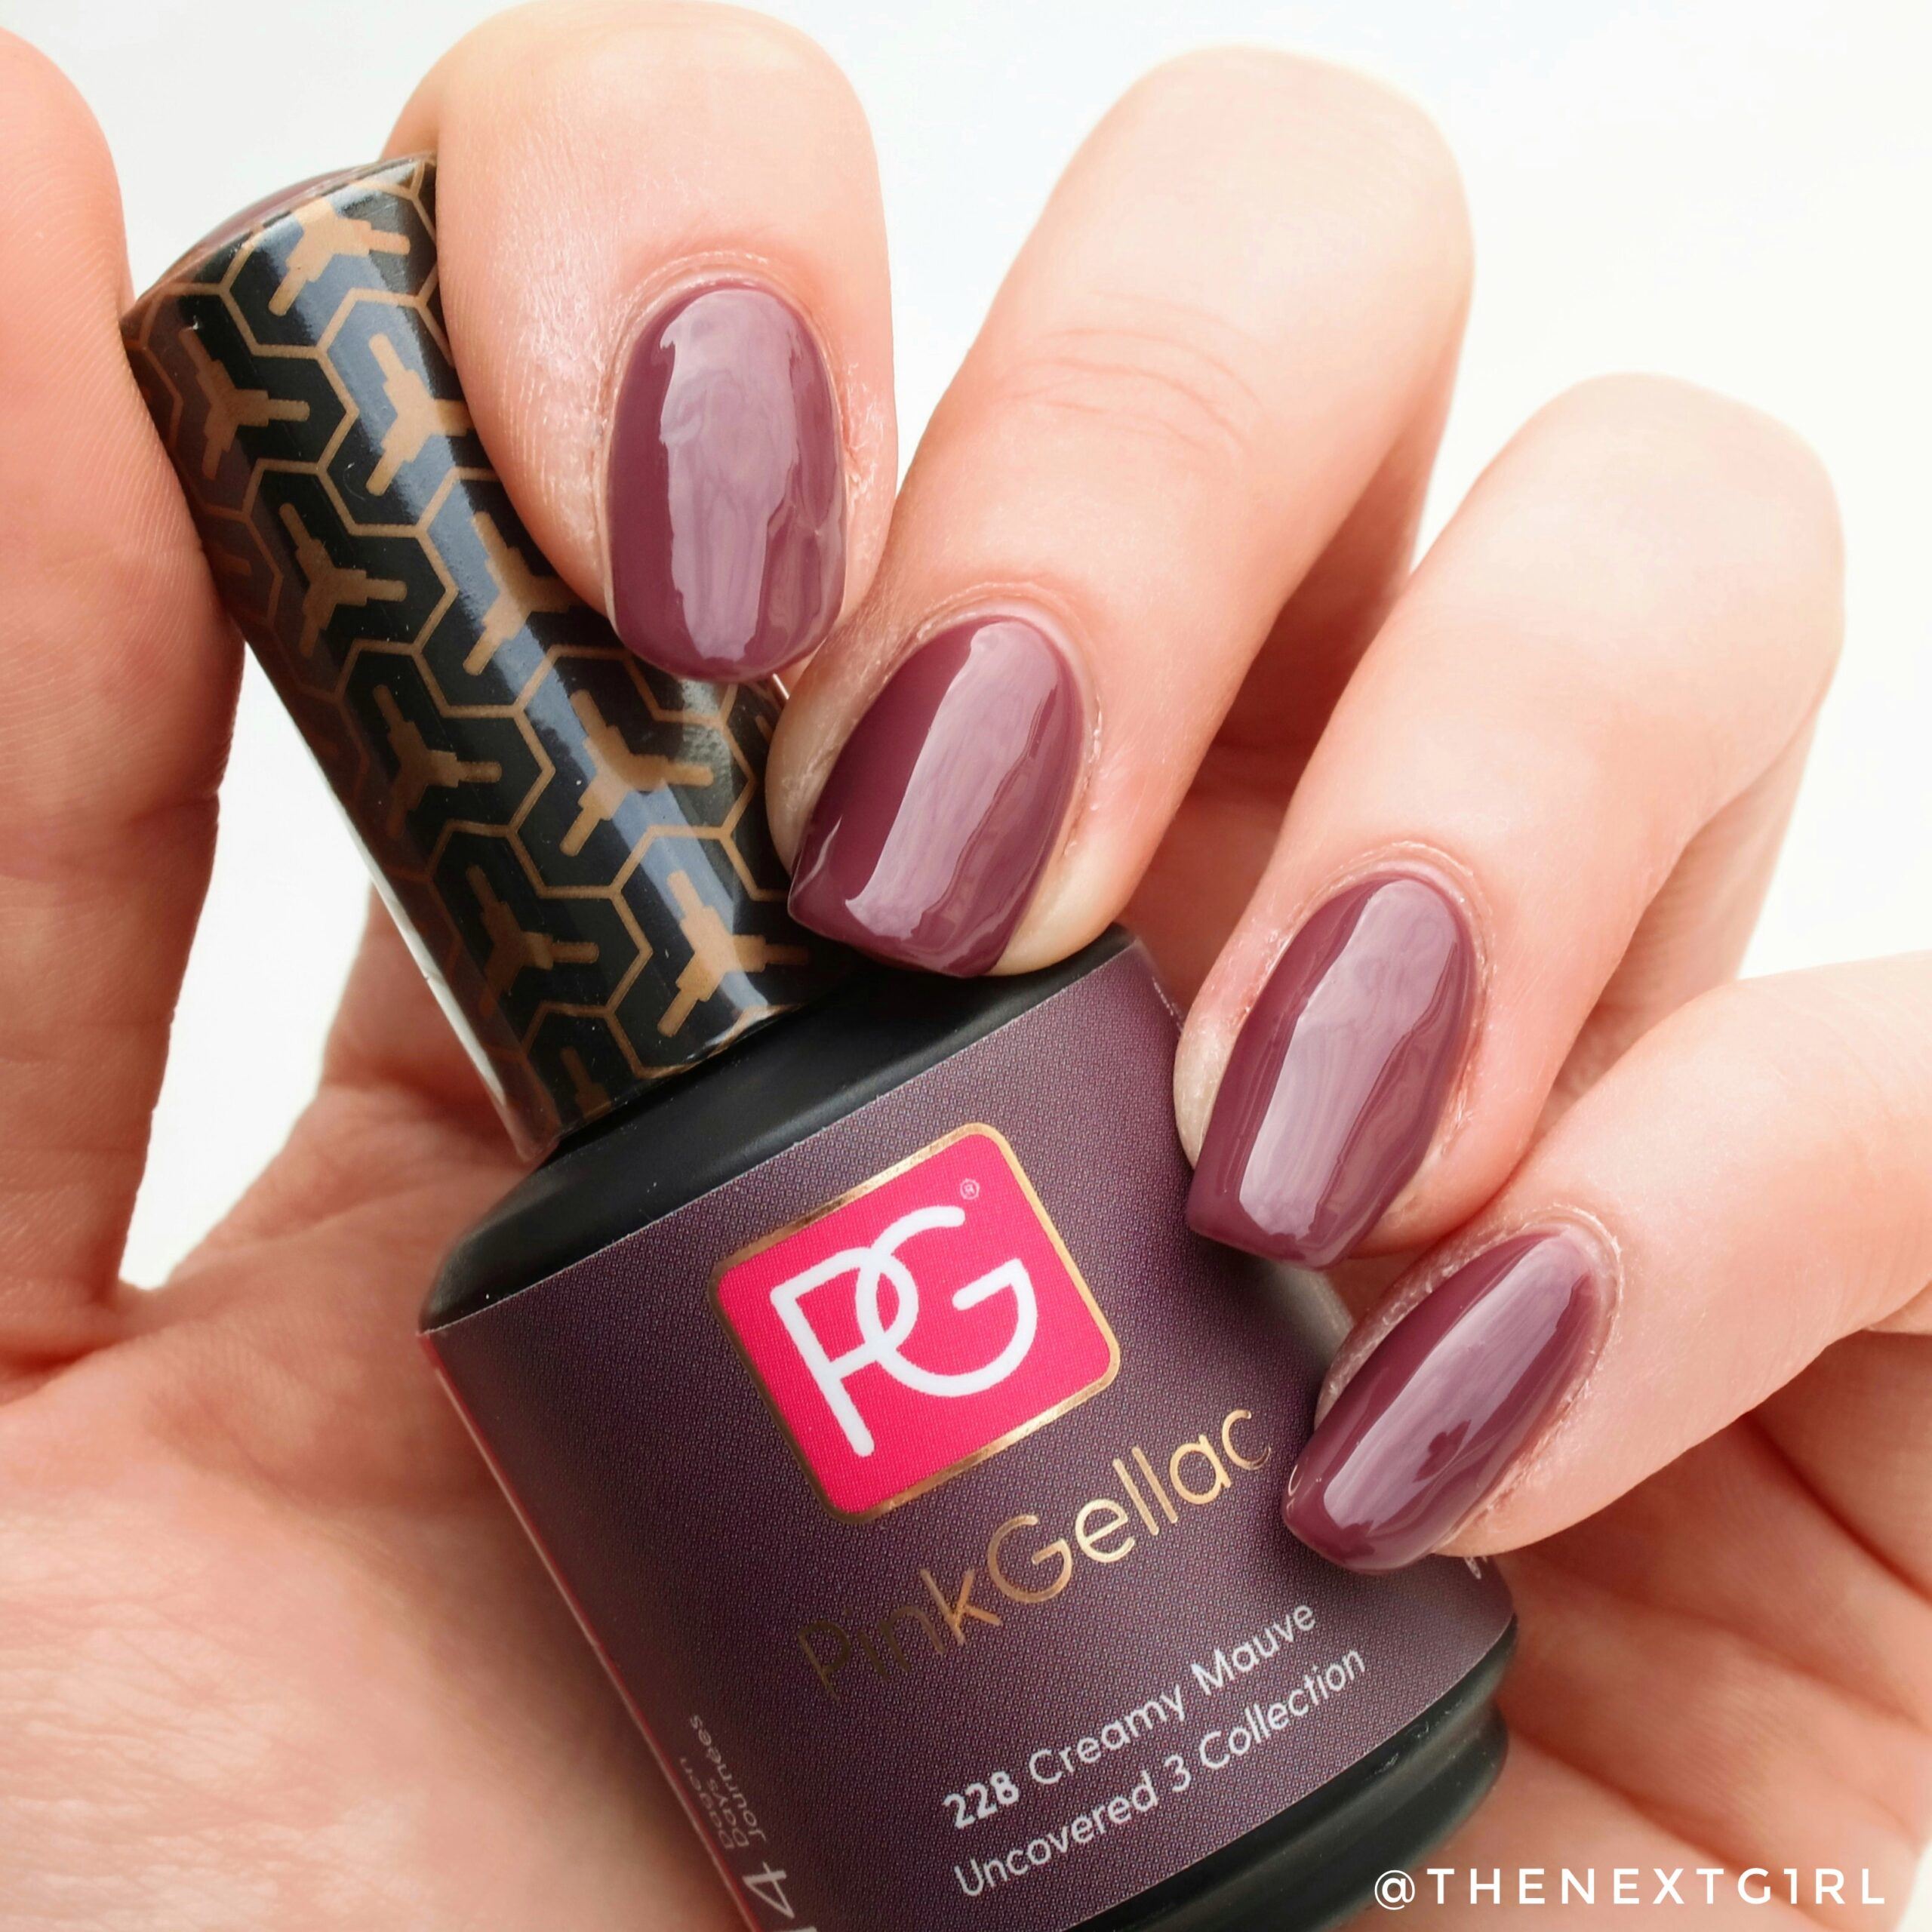 PinkGellac 228 Creamy Mauve Uncovered swatch